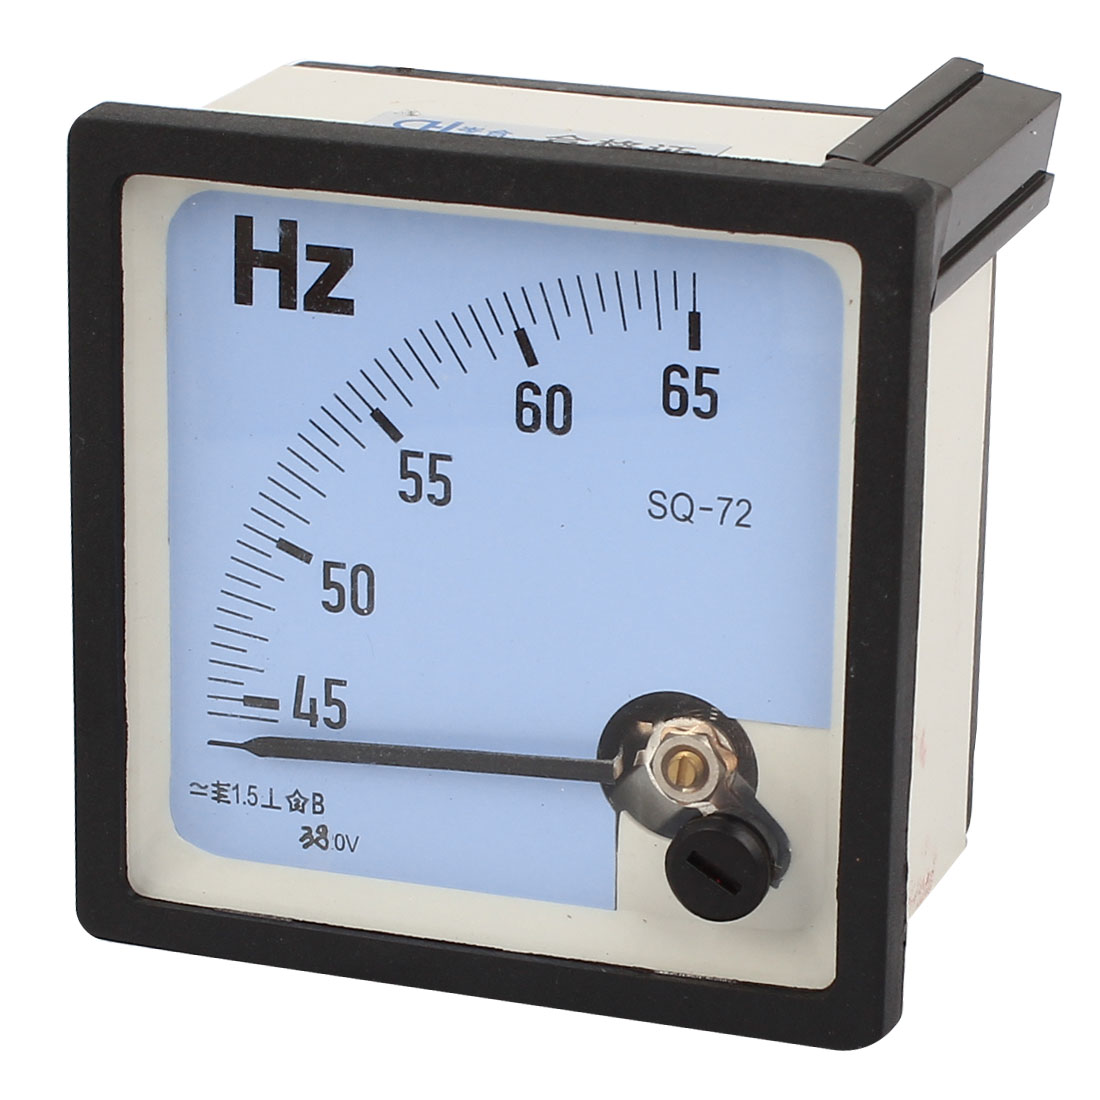 Unique Bargains 45-65Hz Frequency AC 380V Analog Panel Meter 1.5 Accuracy Class Tester... by Unique-Bargains